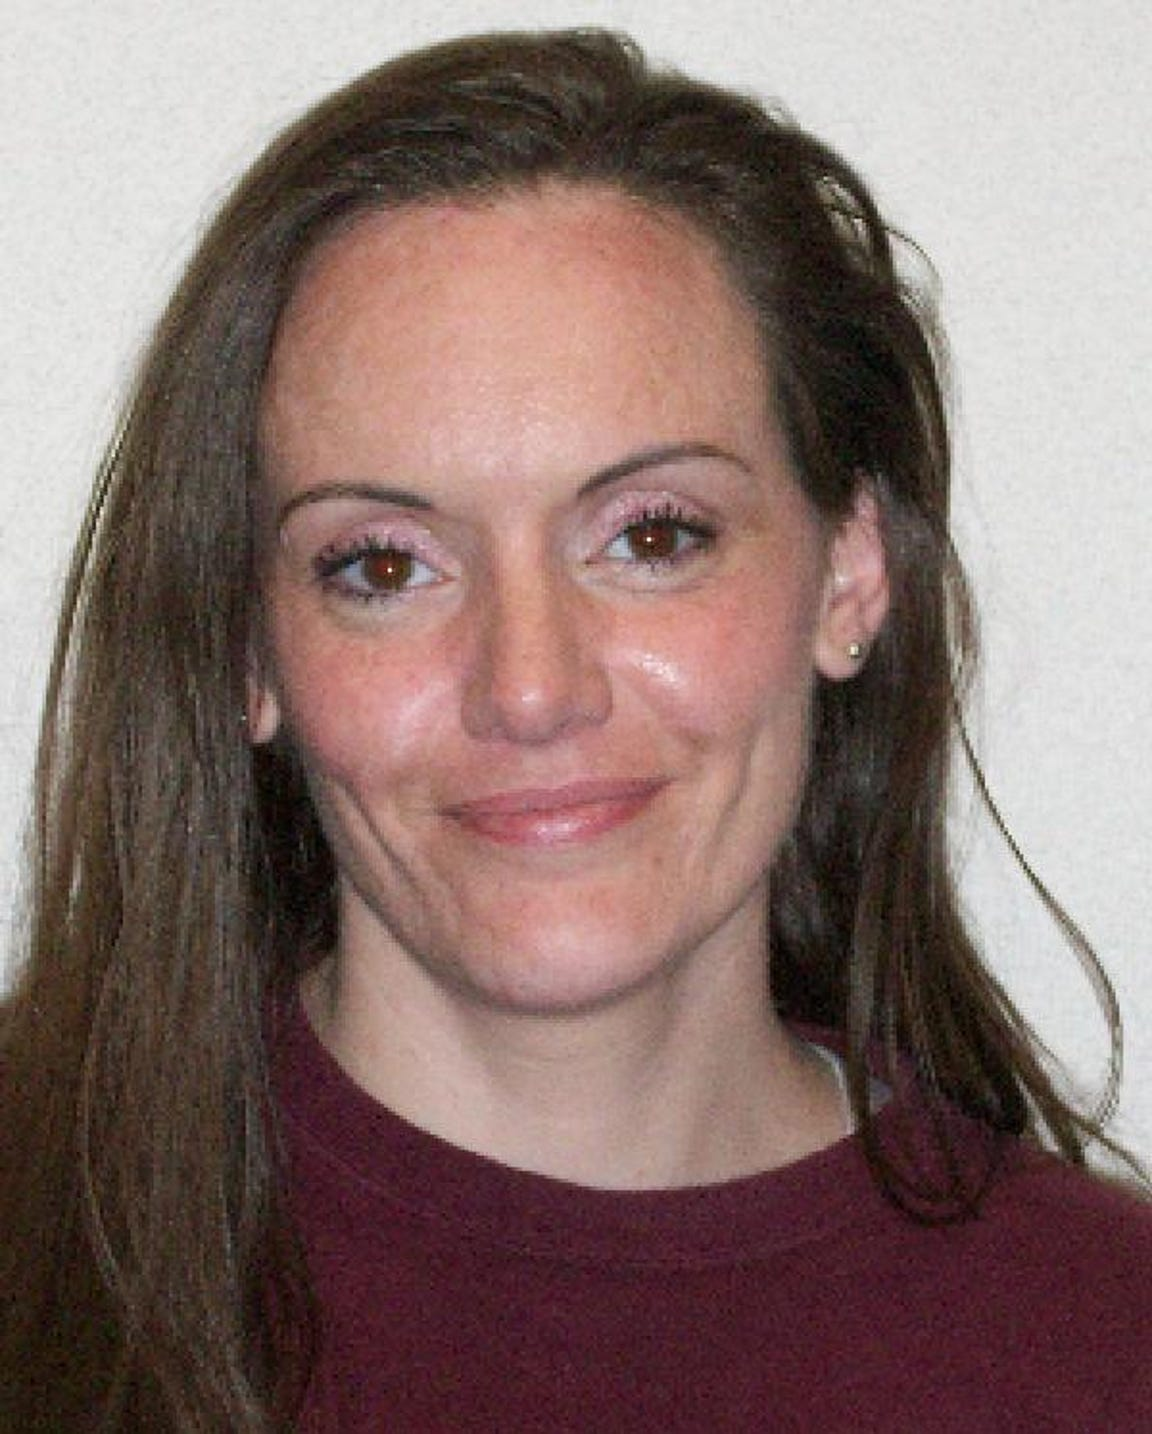 Trista Chisholm after she had been in prison for about 10 months, May 2018.